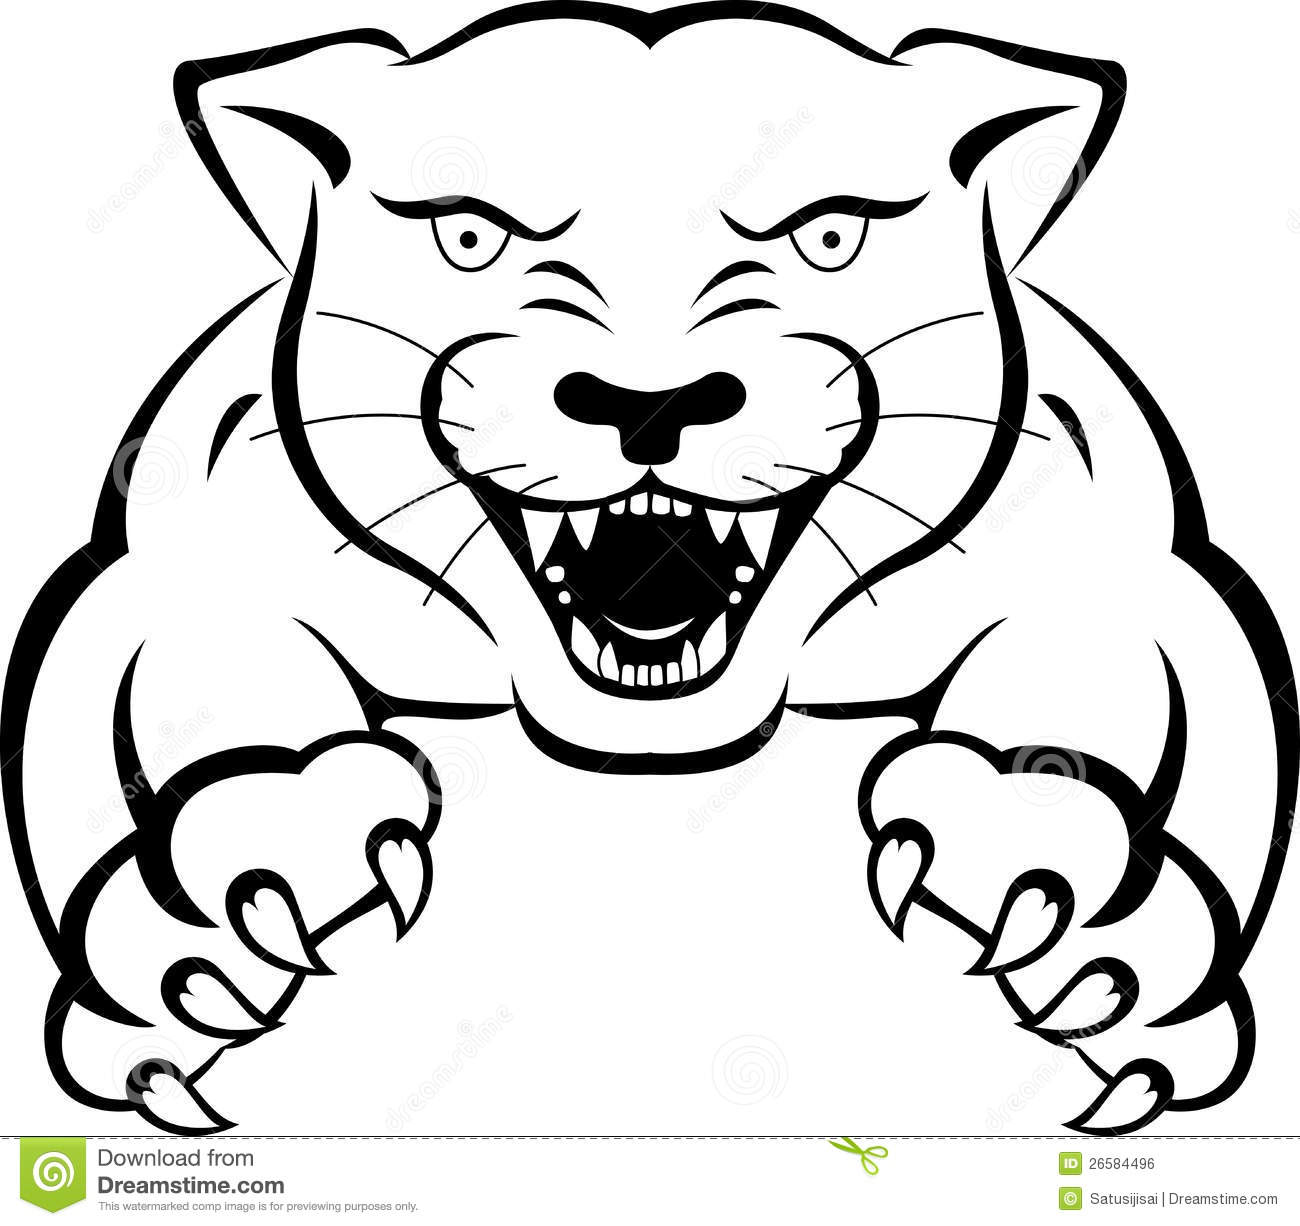 Panther Tattoo Royalty Free Stock Image